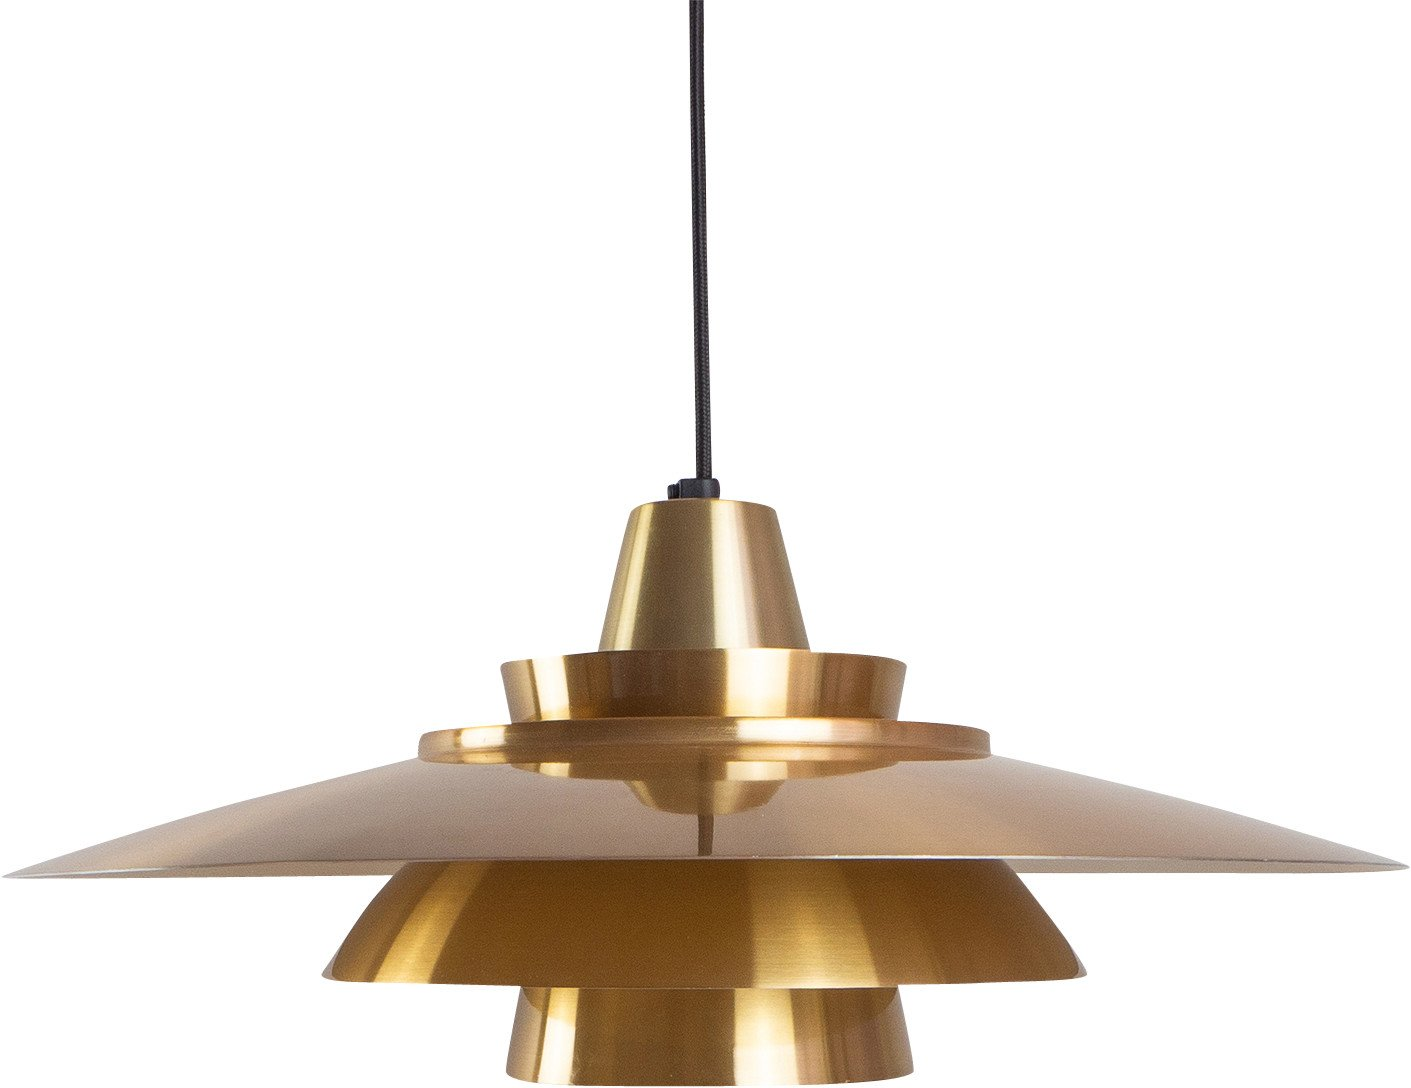 Pendant Lamp, Superlight, Denmark, 1980s